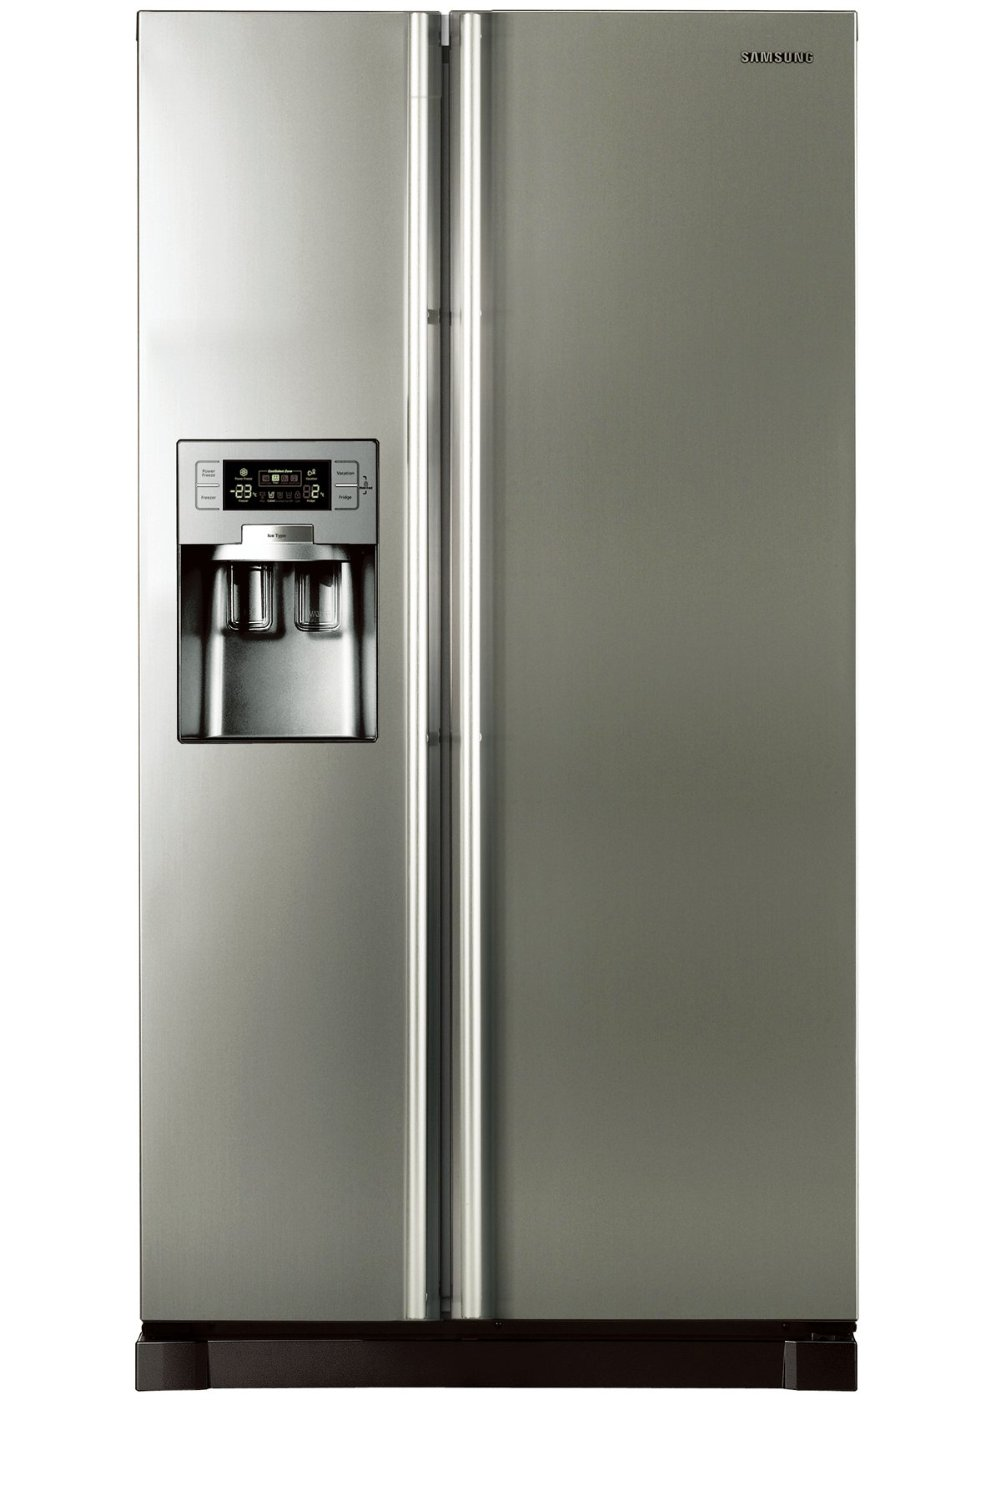 samsung rs21hutpn1 side by side refrigerator. Black Bedroom Furniture Sets. Home Design Ideas